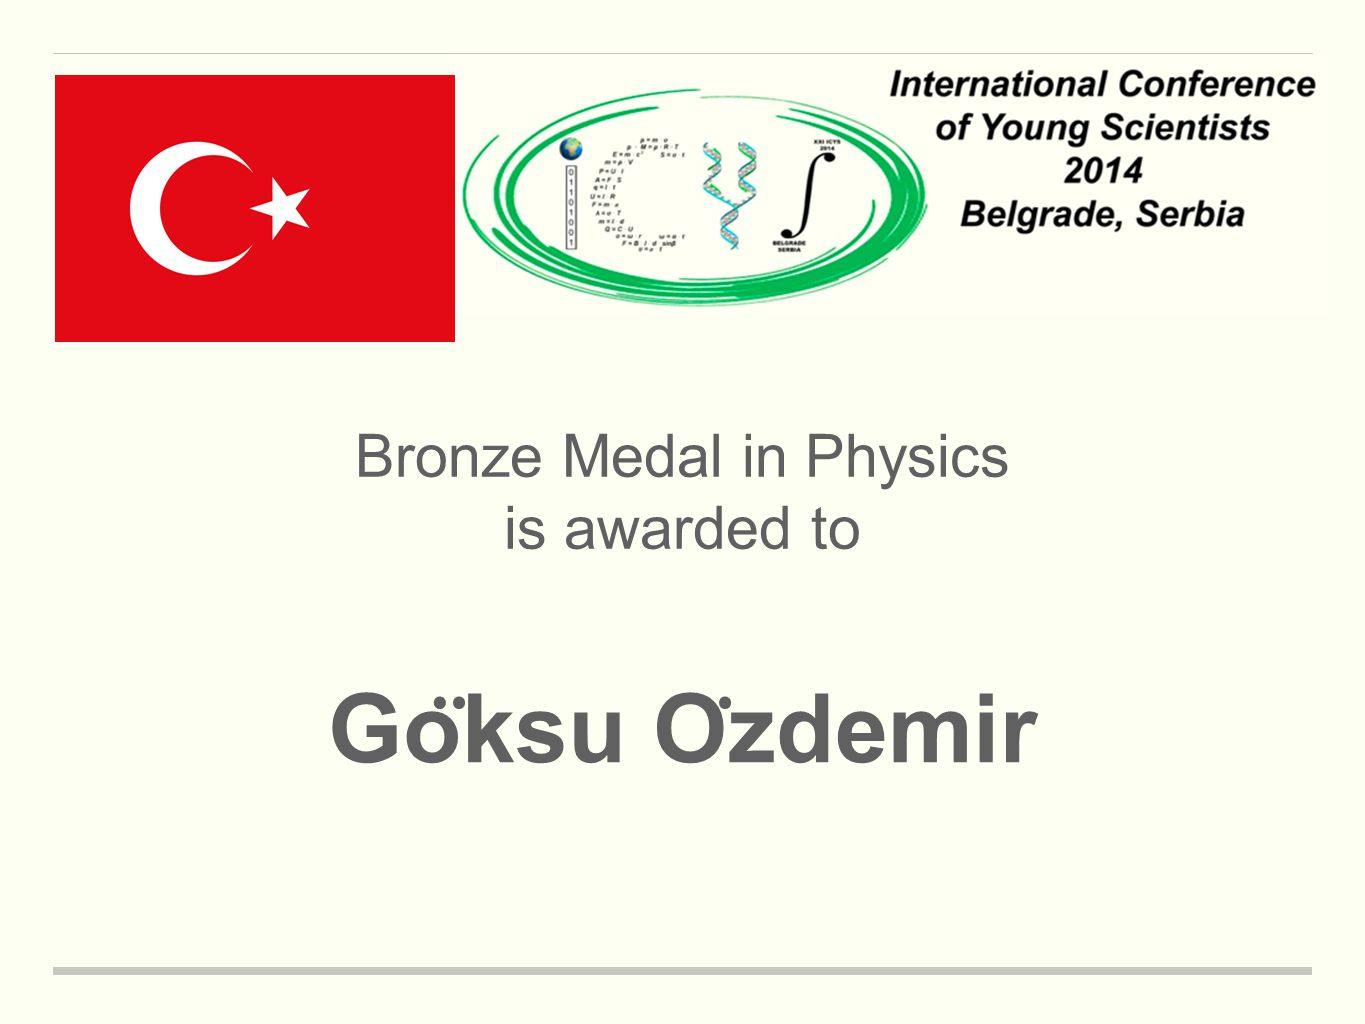 Bronze Medal in Physics is awarded to Go ̈ ksu O ̈ zdemir